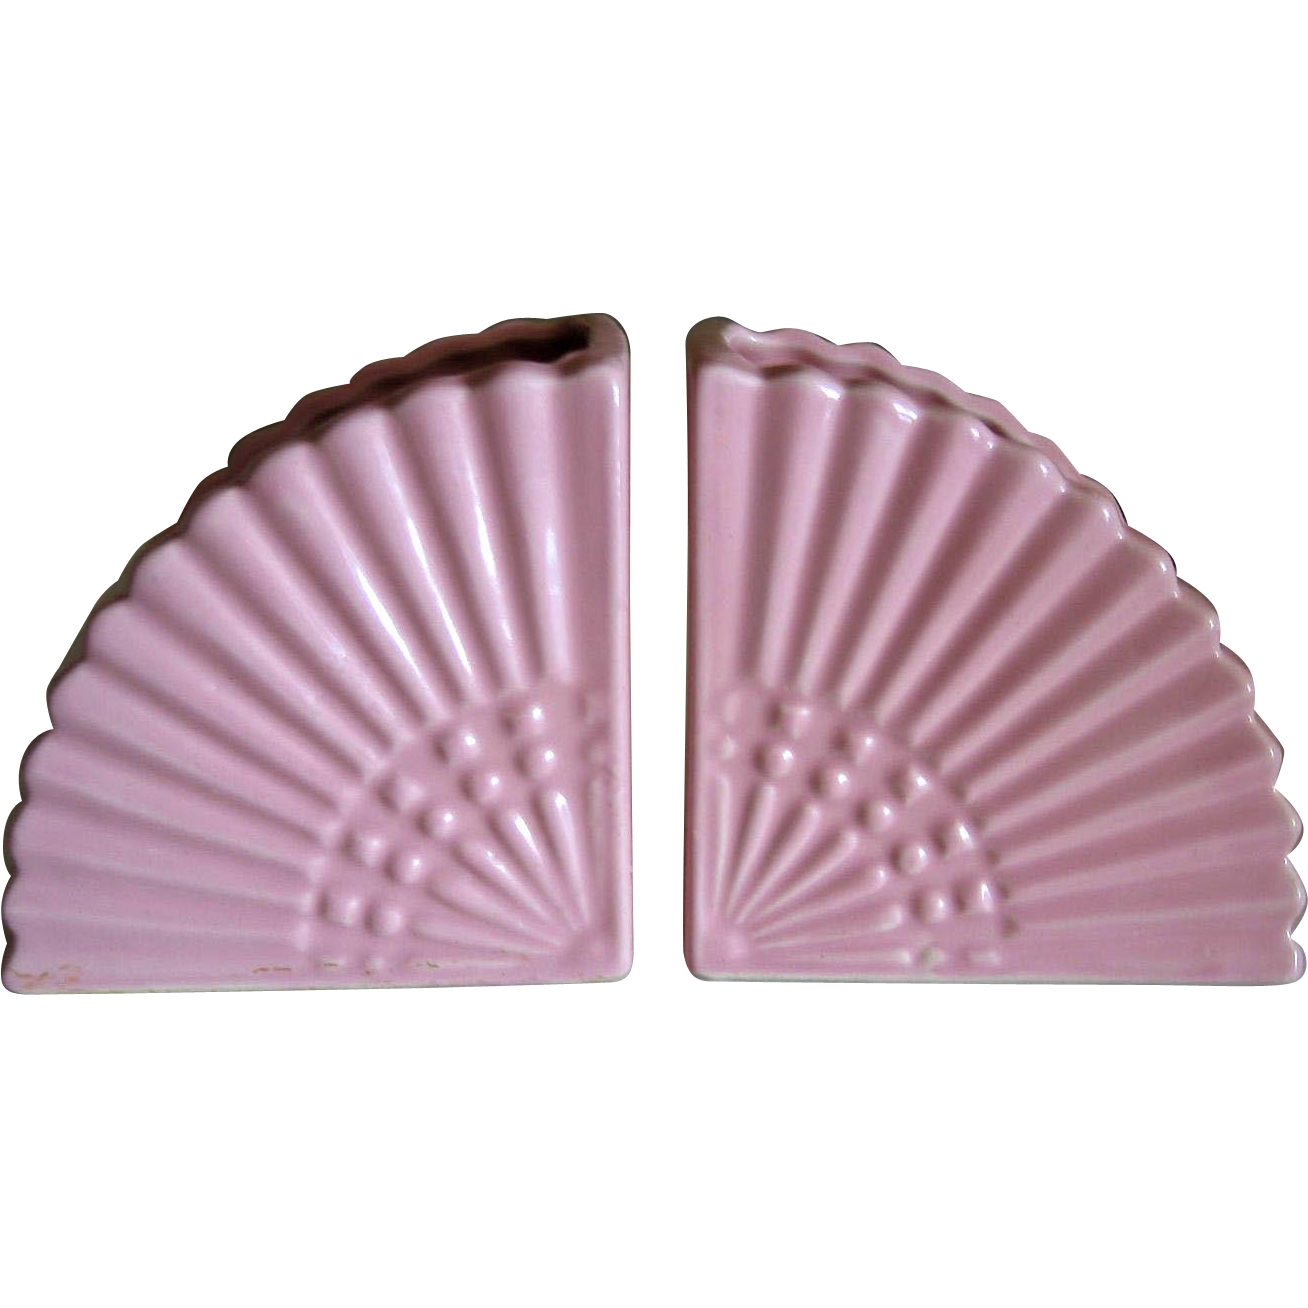 Pair of Pink Fan Vases or Bookends Mid Century